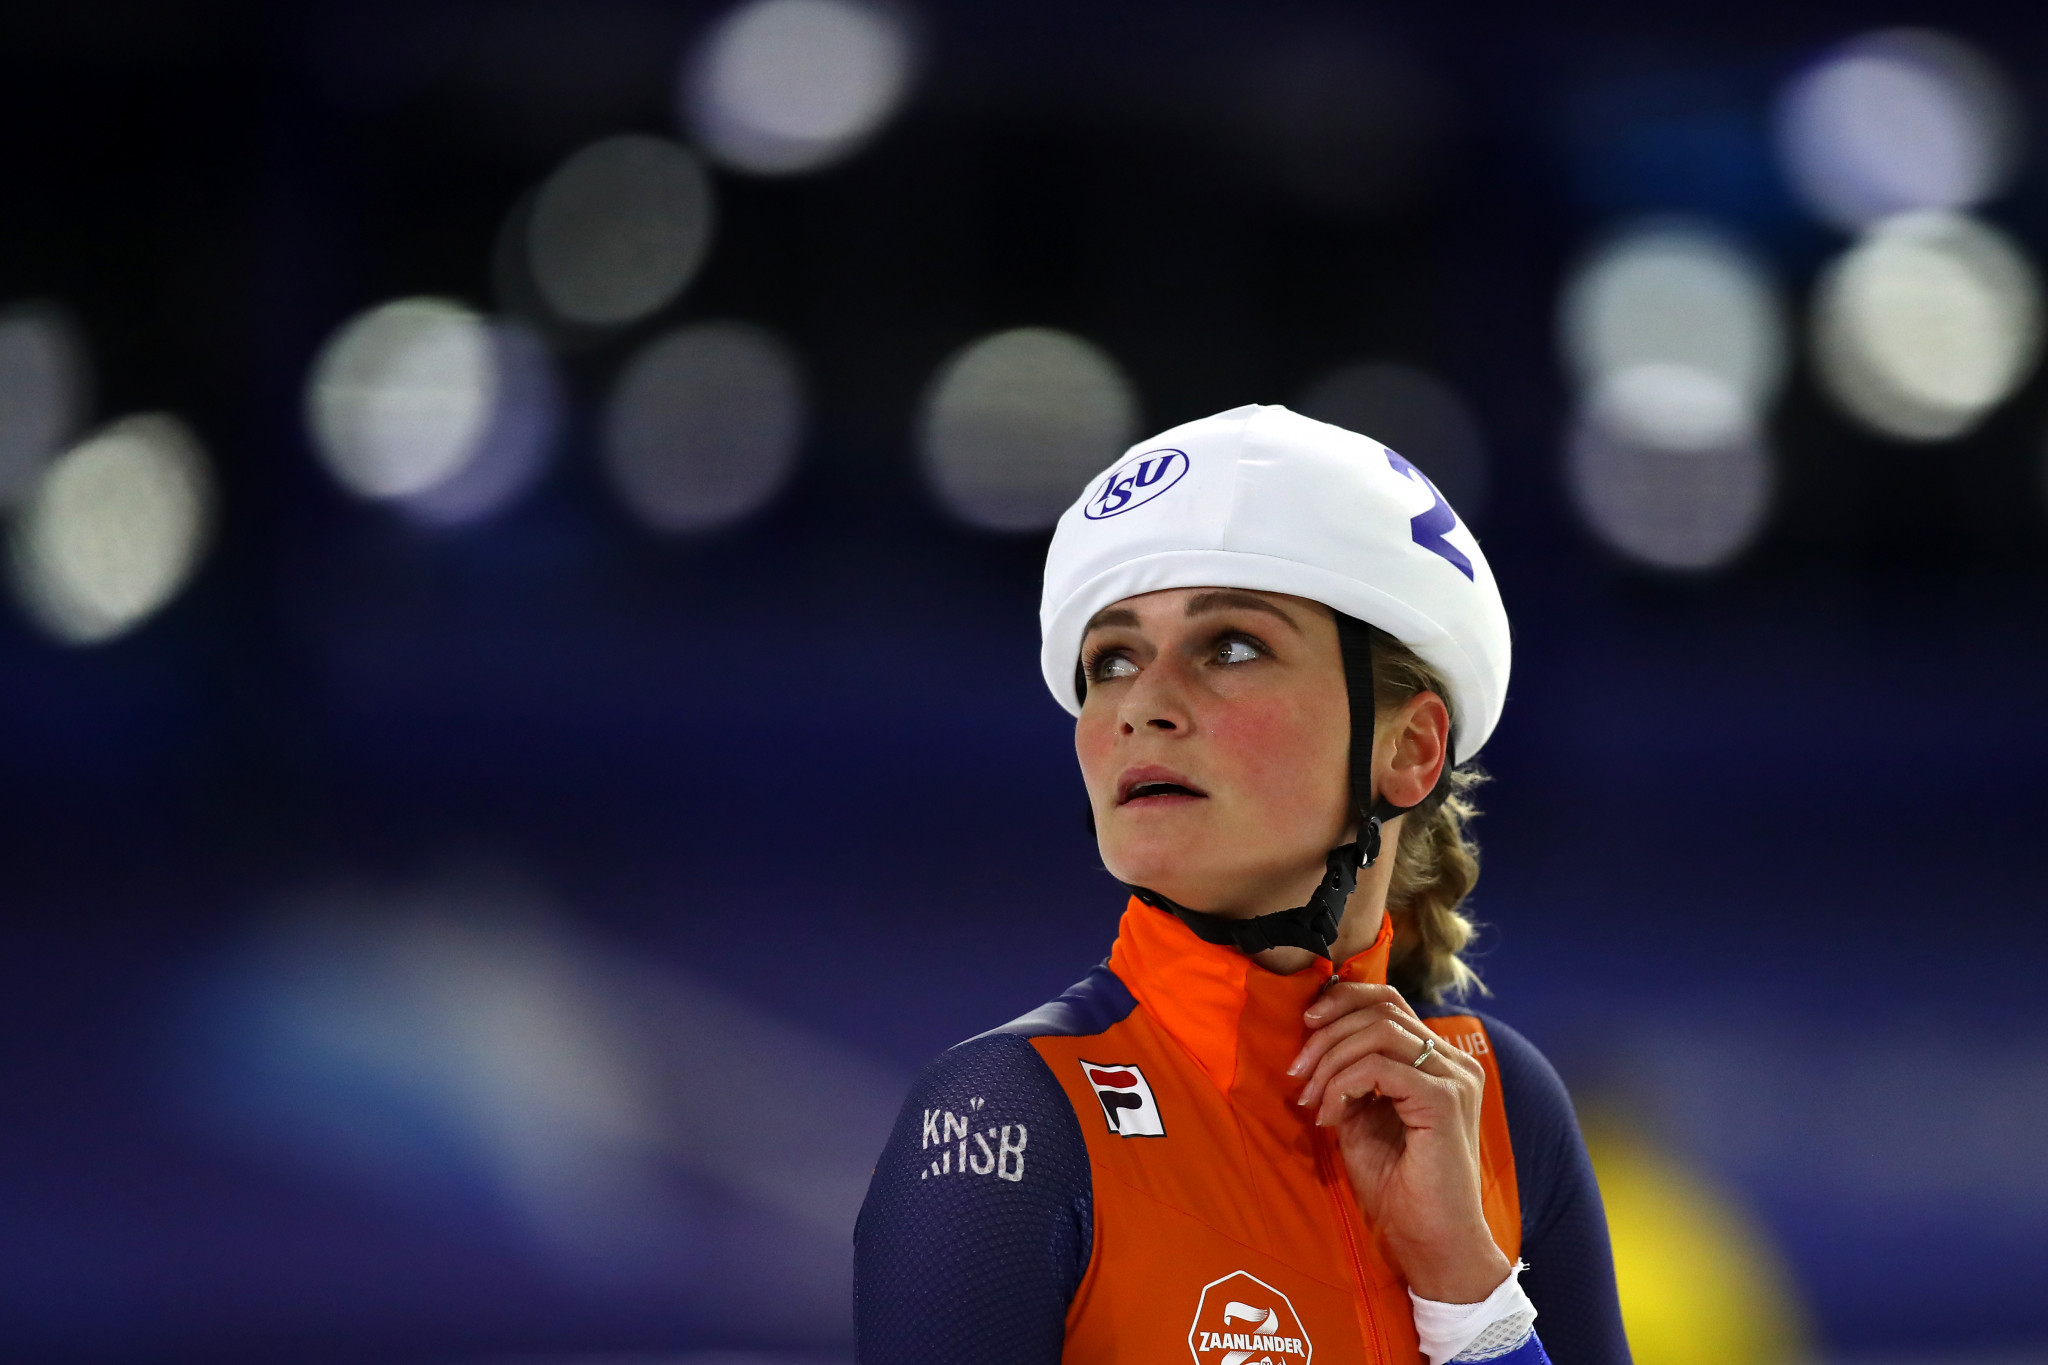 Dutch dominant on day two of ISU Speed Skating World Cup in Heerenveen